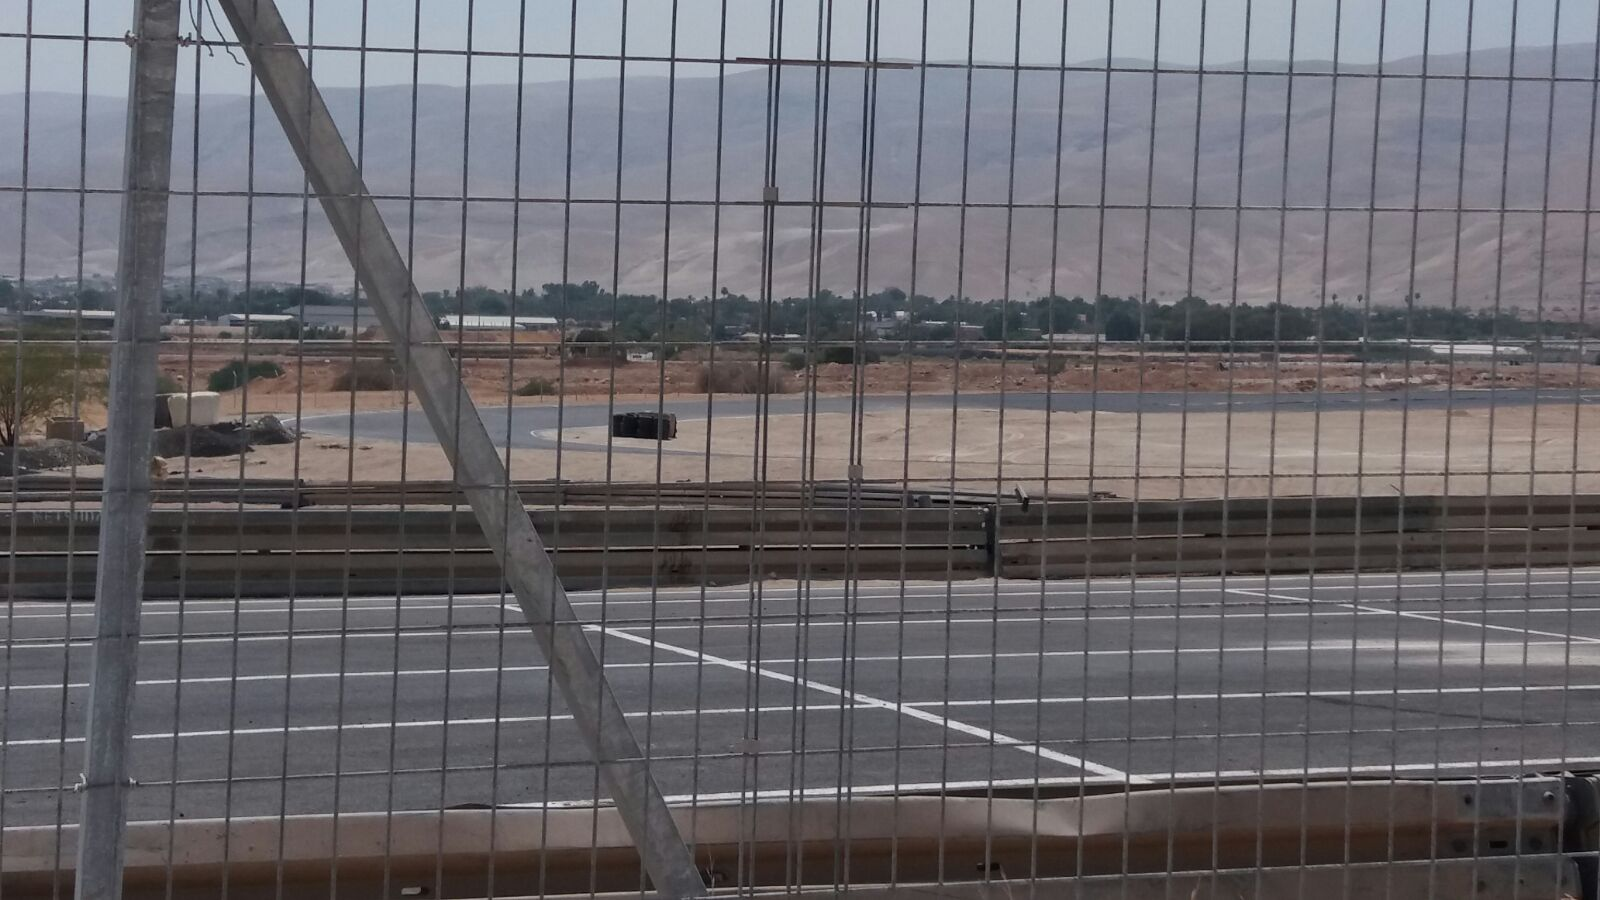 The newly paved section of the race track, a portion of which is inside an IDF live fire zone, August 2017. (Photo by Dror Etkes)